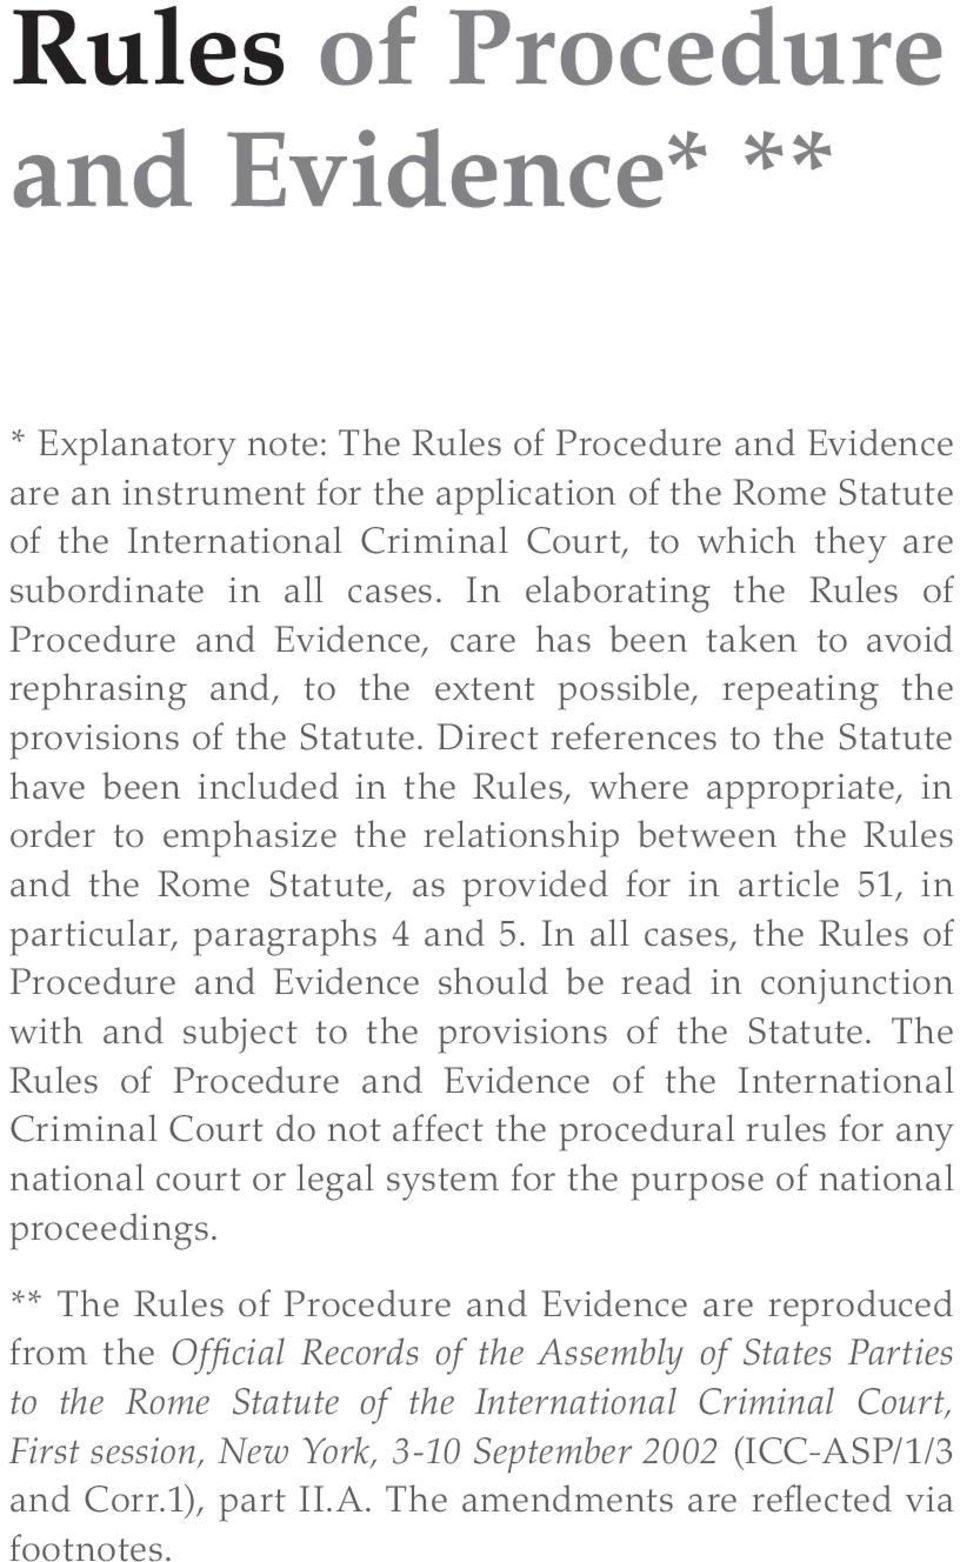 Direct references to the Statute have been included in the Rules, where appropriate, in order to emphasize the relationship between the Rules and the Rome Statute, as provided for in article 51, in